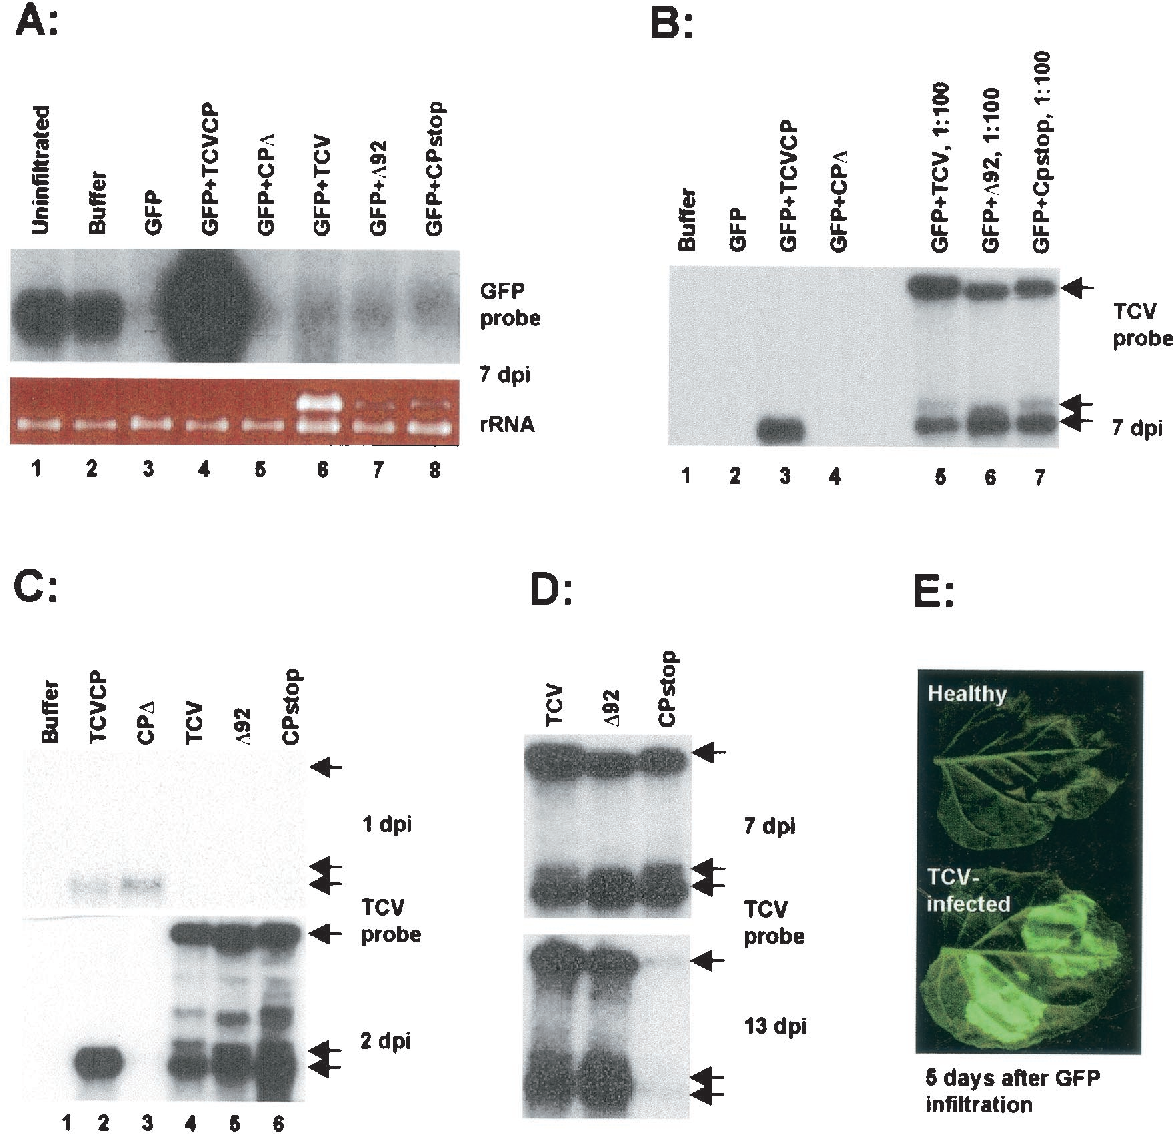 FIG. 3. TCV CP suppresses an early initiation step of PTGS. (A) TCV CP confers strong silencing suppression, whereas the TCV genome constructs do not. GFP 16c plant leaves were infiltrated with Agrobacterium suspensions carrying the respective constructs indicated on the top of each lane. RNAs were extracted at 7 dpi, and RNA blot membranes were hybridized with a 32P-labeled GFP probe (random priming labeling). The bottom panel shows the ethidium bromide-stained gel as a loading control. TCV genomic RNA is visible as the intensely stained band above the rRNA band in lanes 6, 7, and 8. (B) Comparison of the levels of TCV CP mRNA transcribed from the transient expression vector and from replicating viral genomes. The same RNA samples (7 dpi) used in panel A were subjected to hybridization with a 32P-labeled, TCV CP-specific probe. Note that the last three samples were diluted 1:100. The positions of TCV genomic (top arrow) and subgenomic (bottom two arrows) RNAs are indicated to the right in panels B, C, and D. (C) TCV CP mRNA transcribed from the transient expression vector accumulates earlier than those made from the replicating viral genomes. GFP 16c plant leaves were infiltrated with respective Agrobacterium suspensions indicated on the top of the panels, and the infiltrated leaves were extracted for RNA at 1 dpi (top panel) and 2 dpi (bottom panel). The RNA blot membranes were hybridized with a TCV CP-specific probe. (D) TCV CP production during virus infection is required for sustained accumulation of TCV viral RNAs. The accumulation of TCV genomic and subgenomic RNA is shown at 7 and 13 dpi in leaves infiltrated with TCV, 92, and CPstop constructs. (E) CP produced in the leaves systemically infected with TCV suppresses silencing of unrelated RNA. The symptomatic leaves of TCV-infected GFP 16c plants and the corresponding leaves of healthy GFP 16c plants were infiltrated with Agrobacterium suspension carrying PZP-GFP construct. The panel shows one infiltrated le